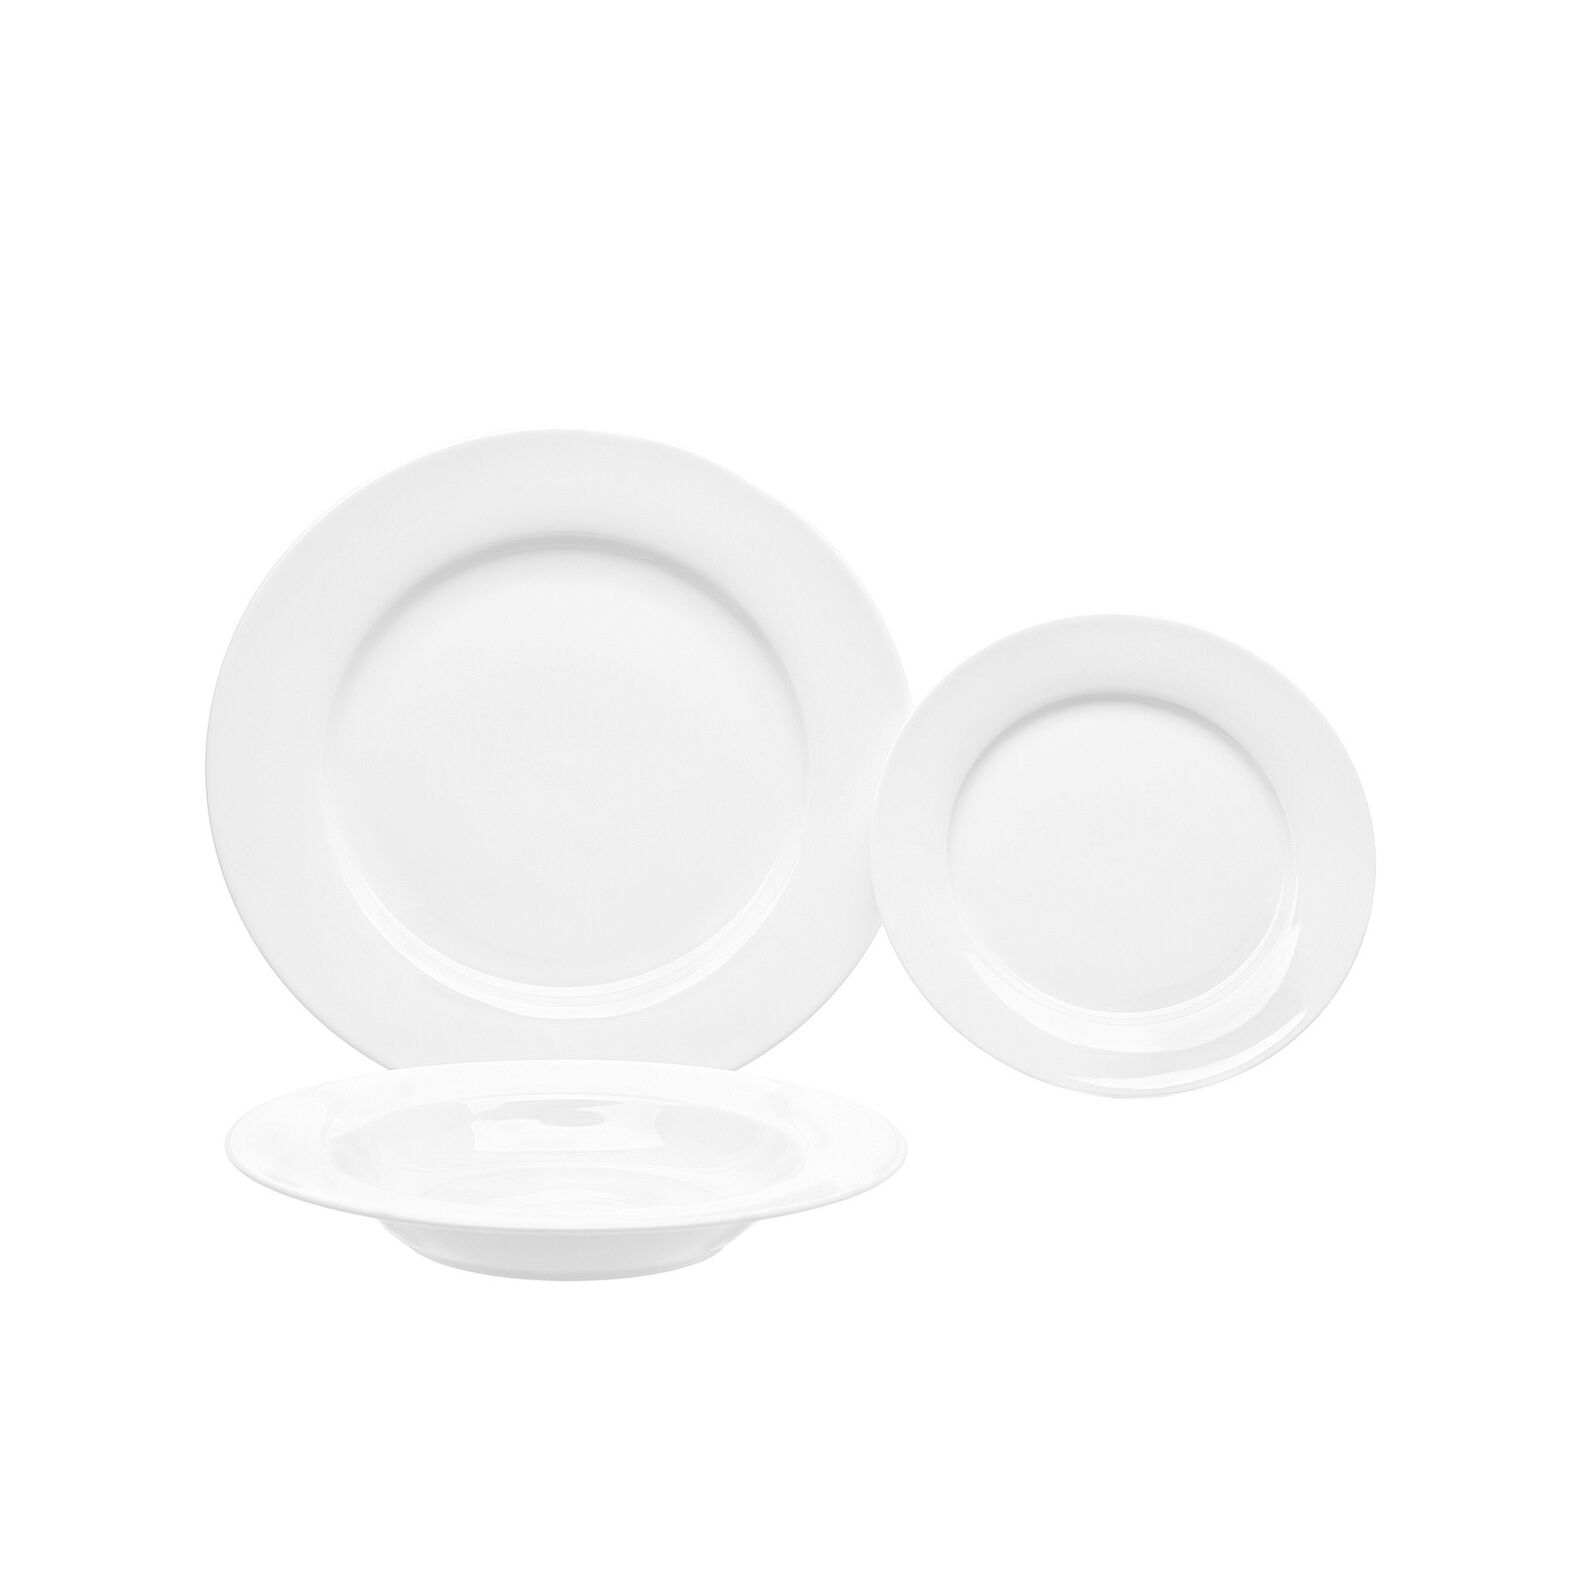 Falda set of 18 white porcelain plates